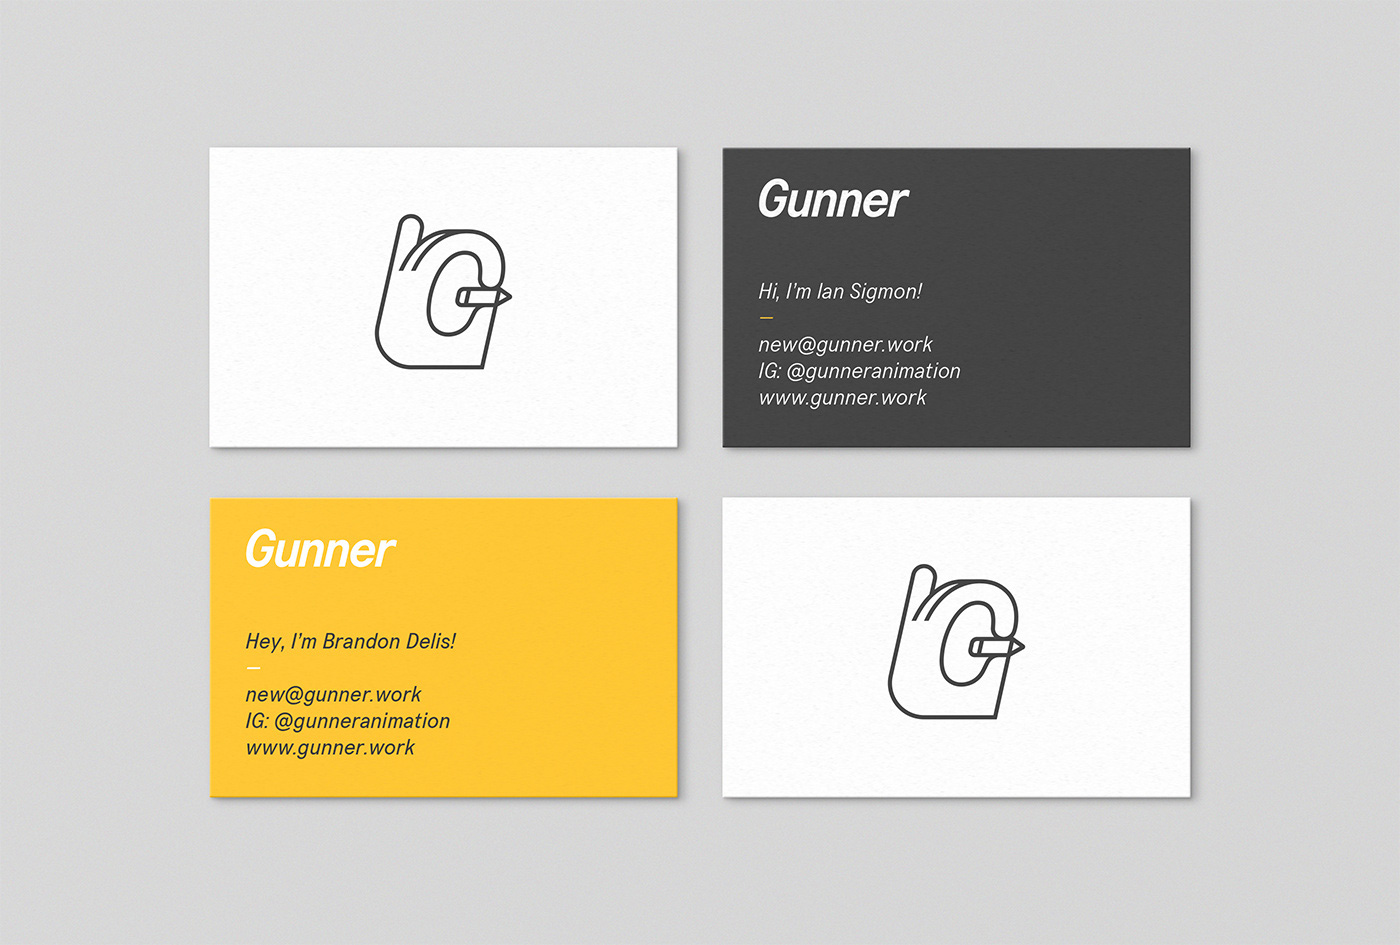 New Logo and Identity for Gunner by Stephen Kelleher